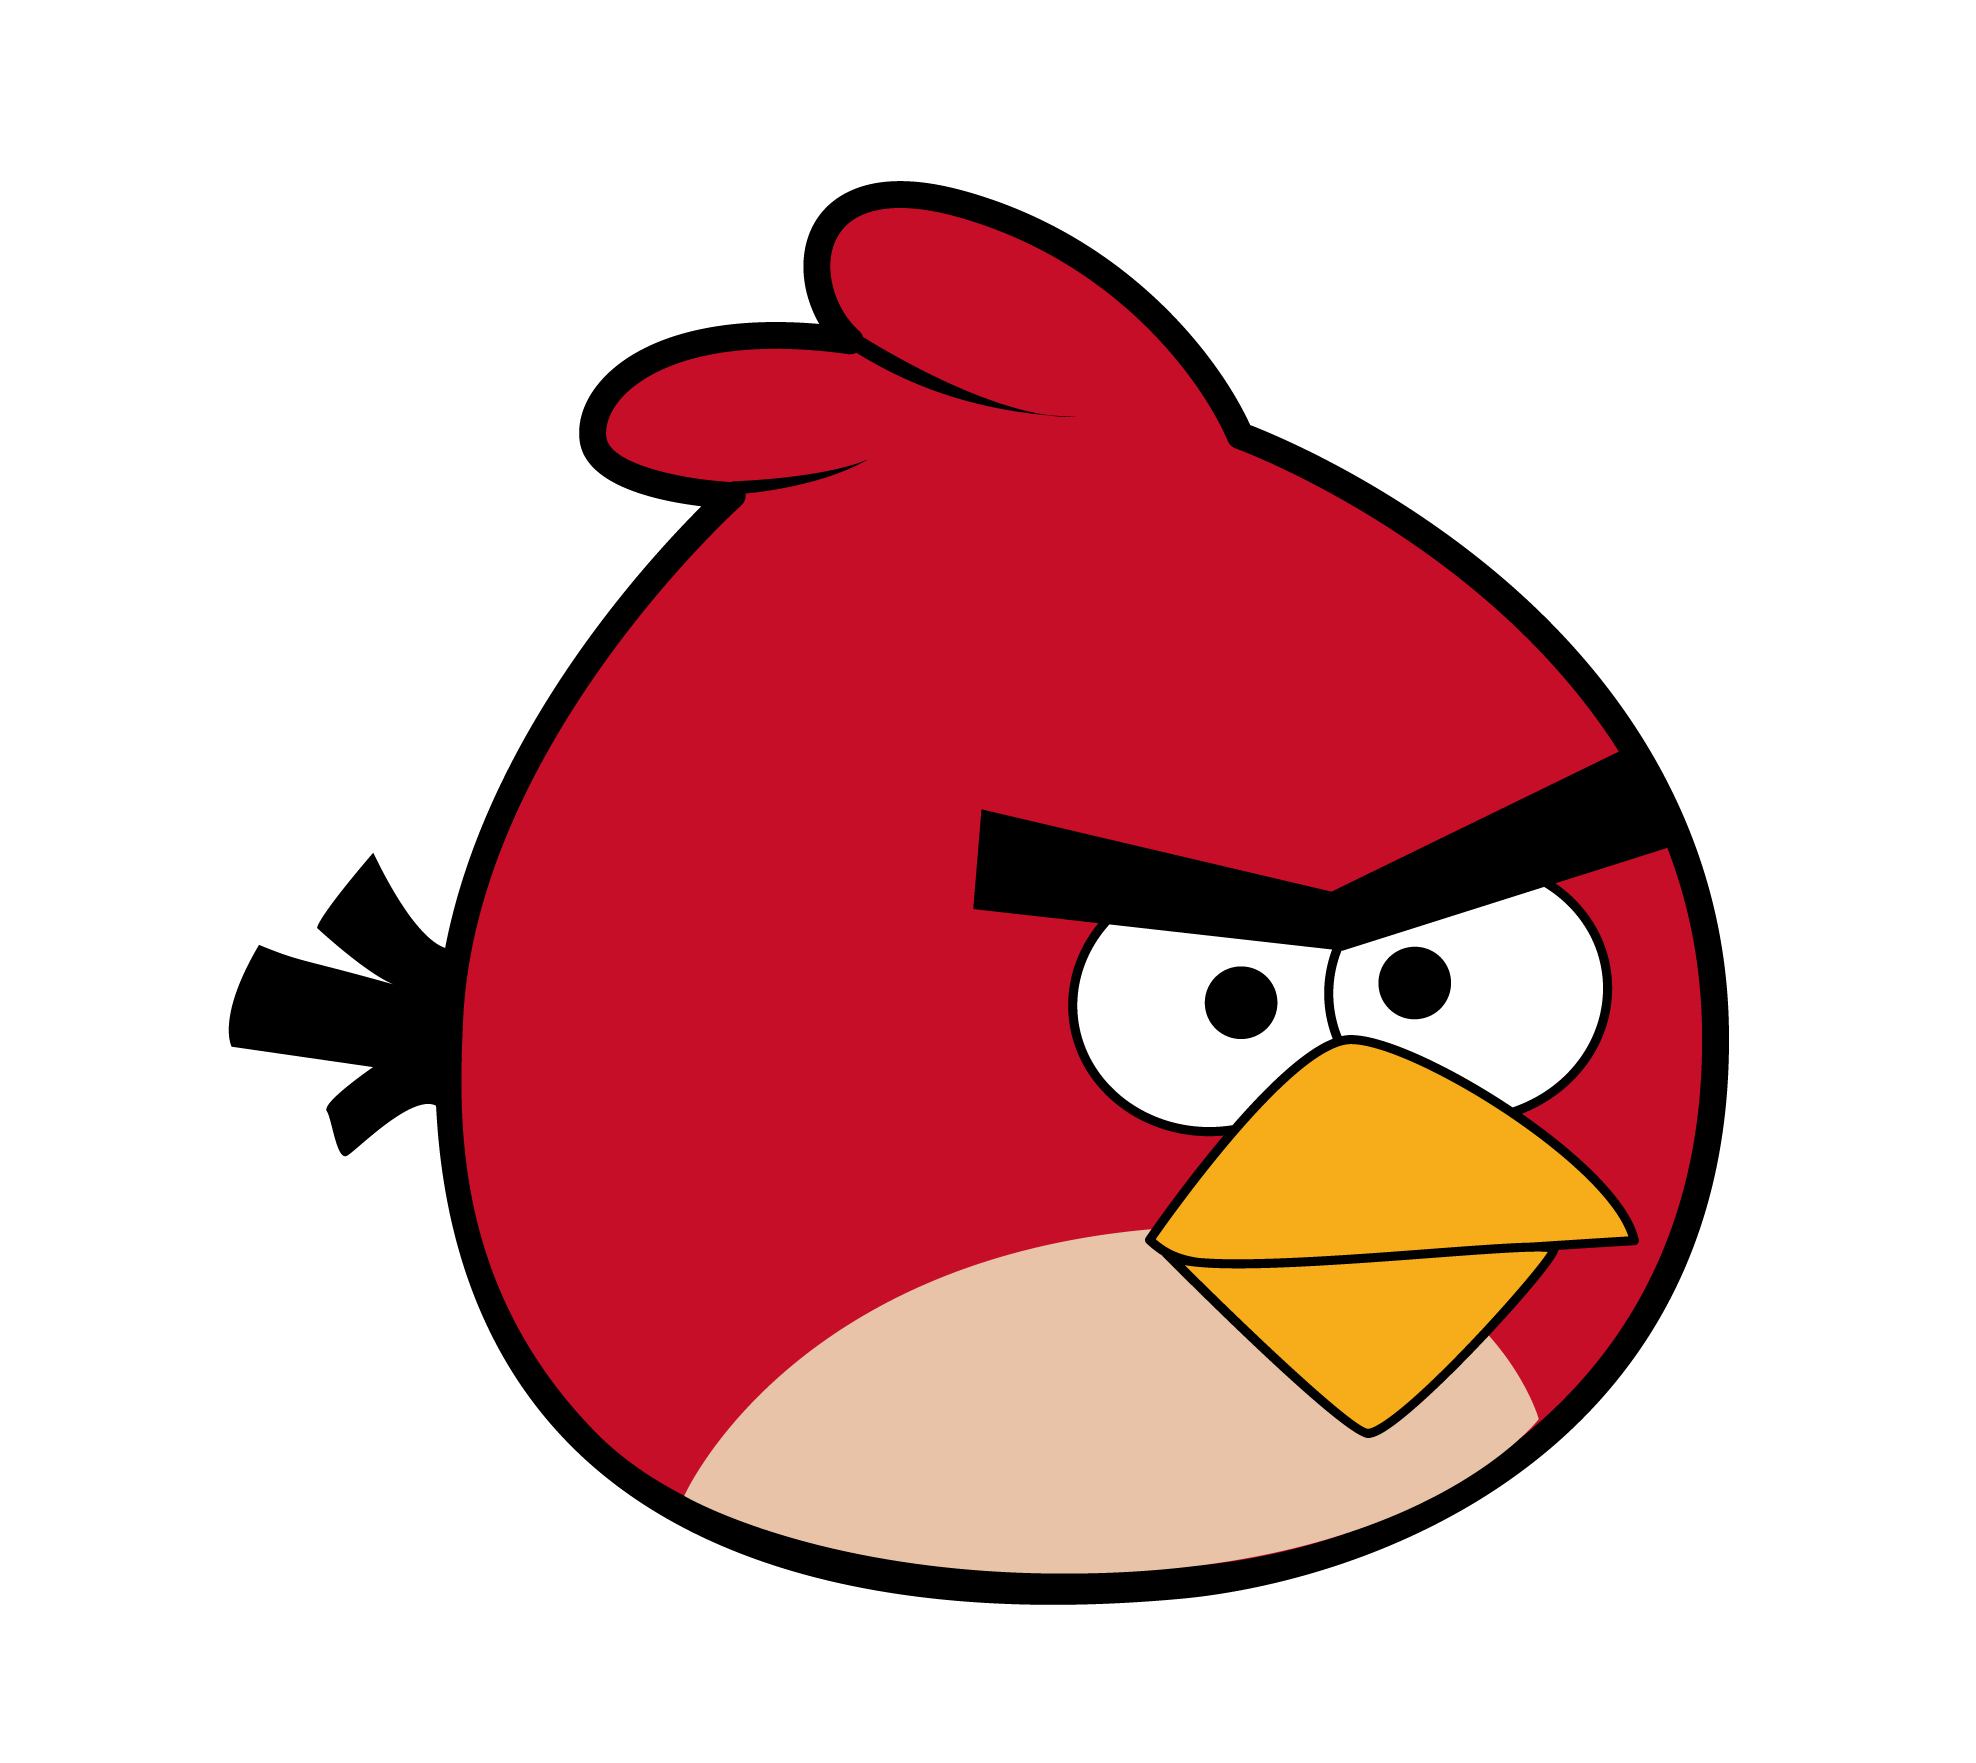 All Things Angry Birds Free Too From Dealwisemommy